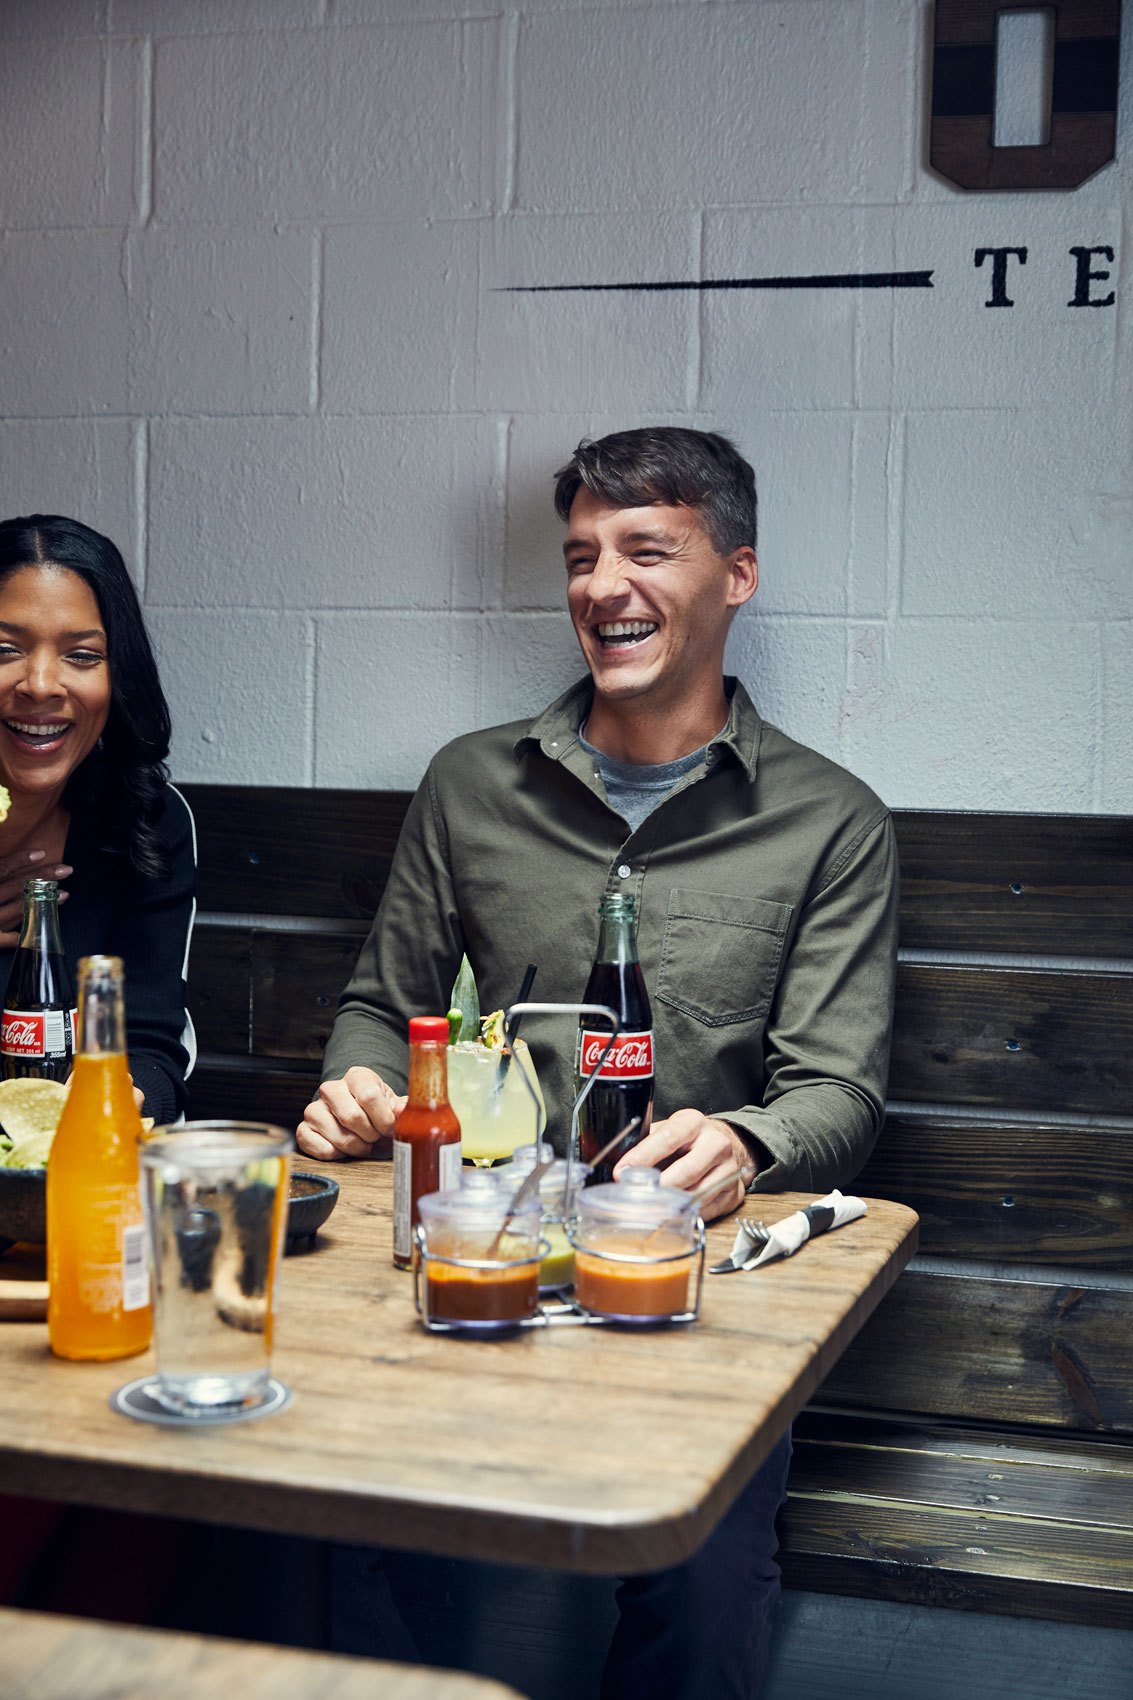 man and woman laughing with coca-cola bottles in restaurant, washington dc commercial photography